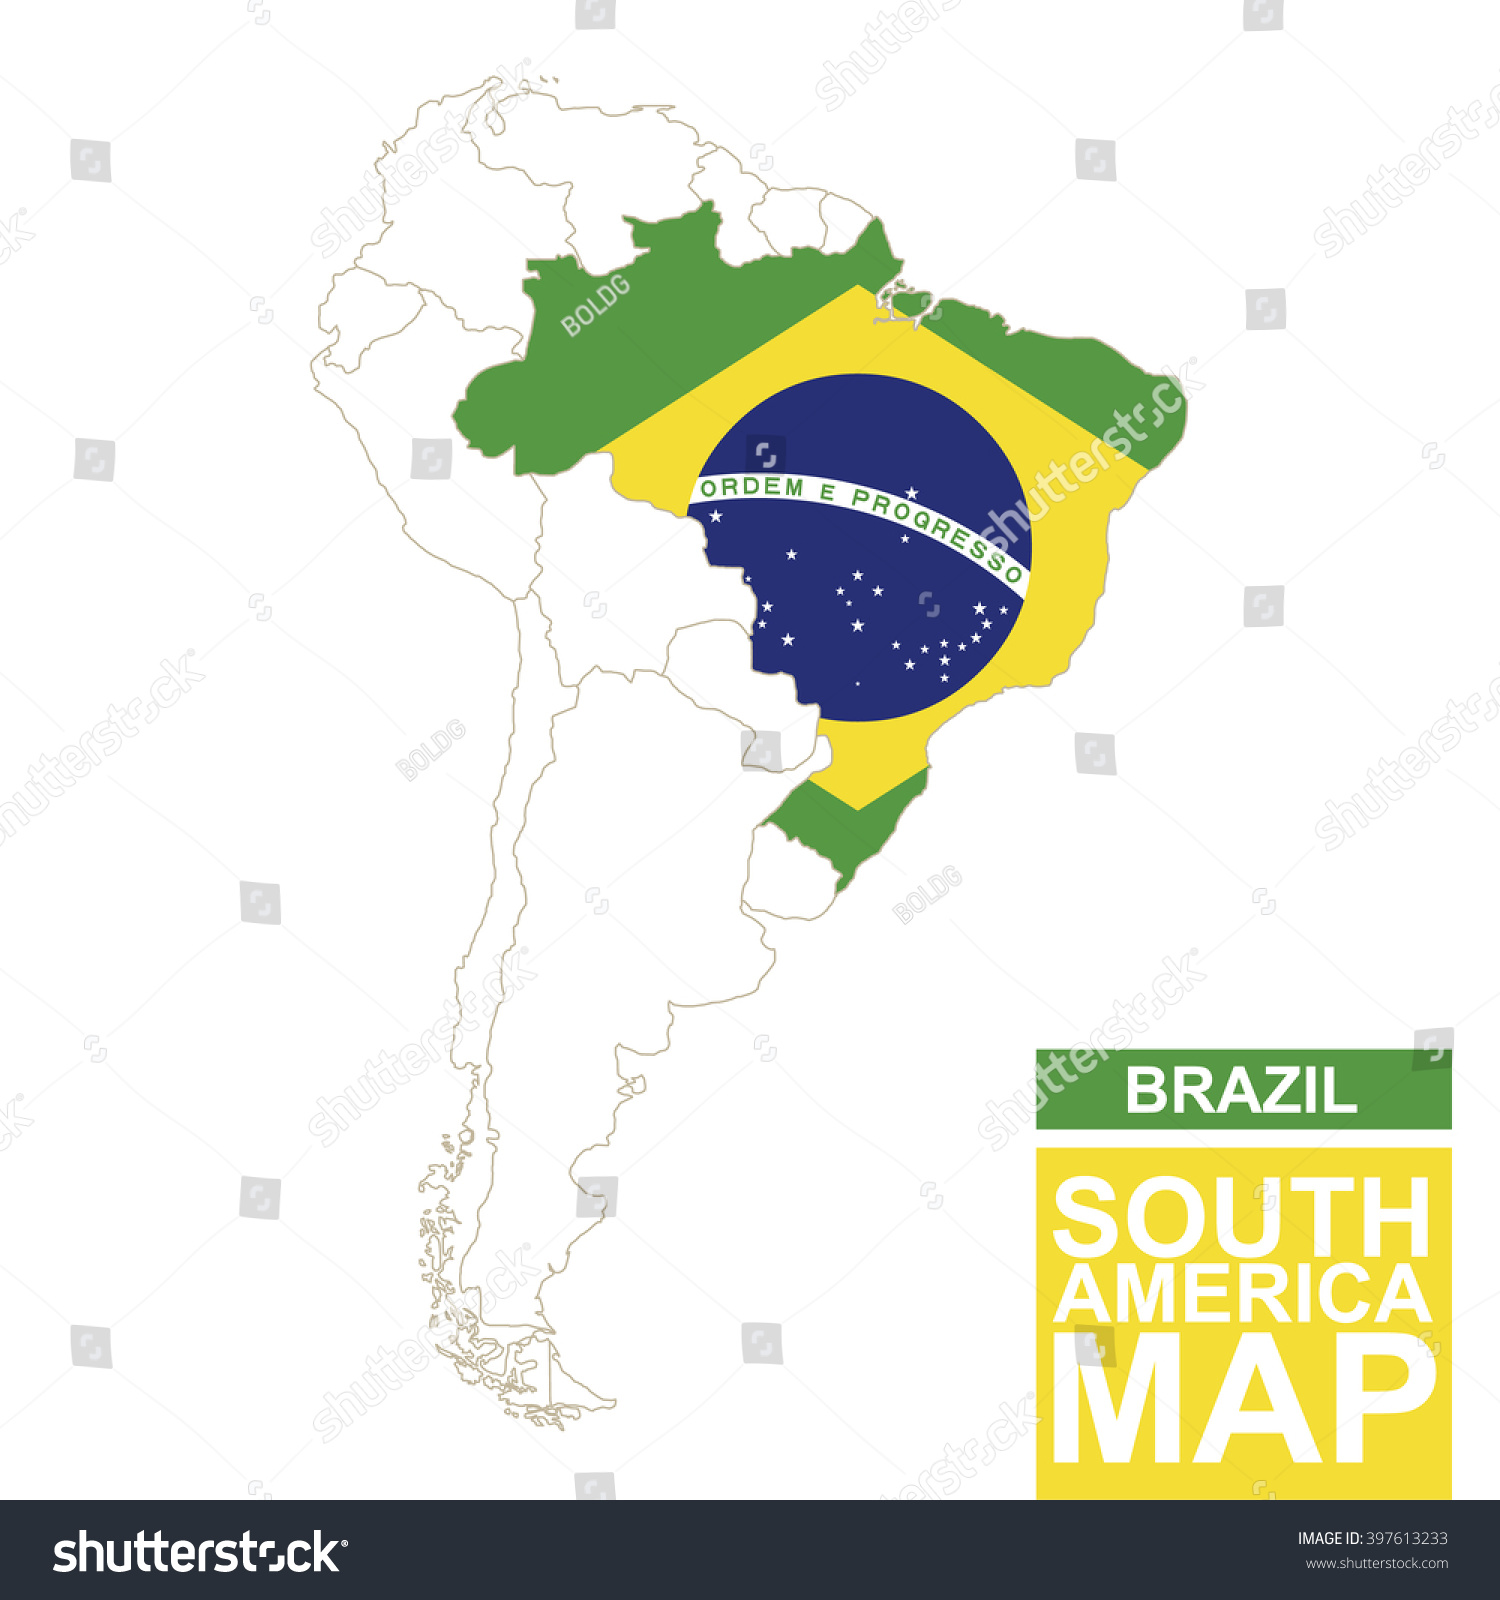 South america contoured map highlighted brazil vectores en stock south america contoured map with highlighted brazil brazil map and flag on south america map gumiabroncs Images